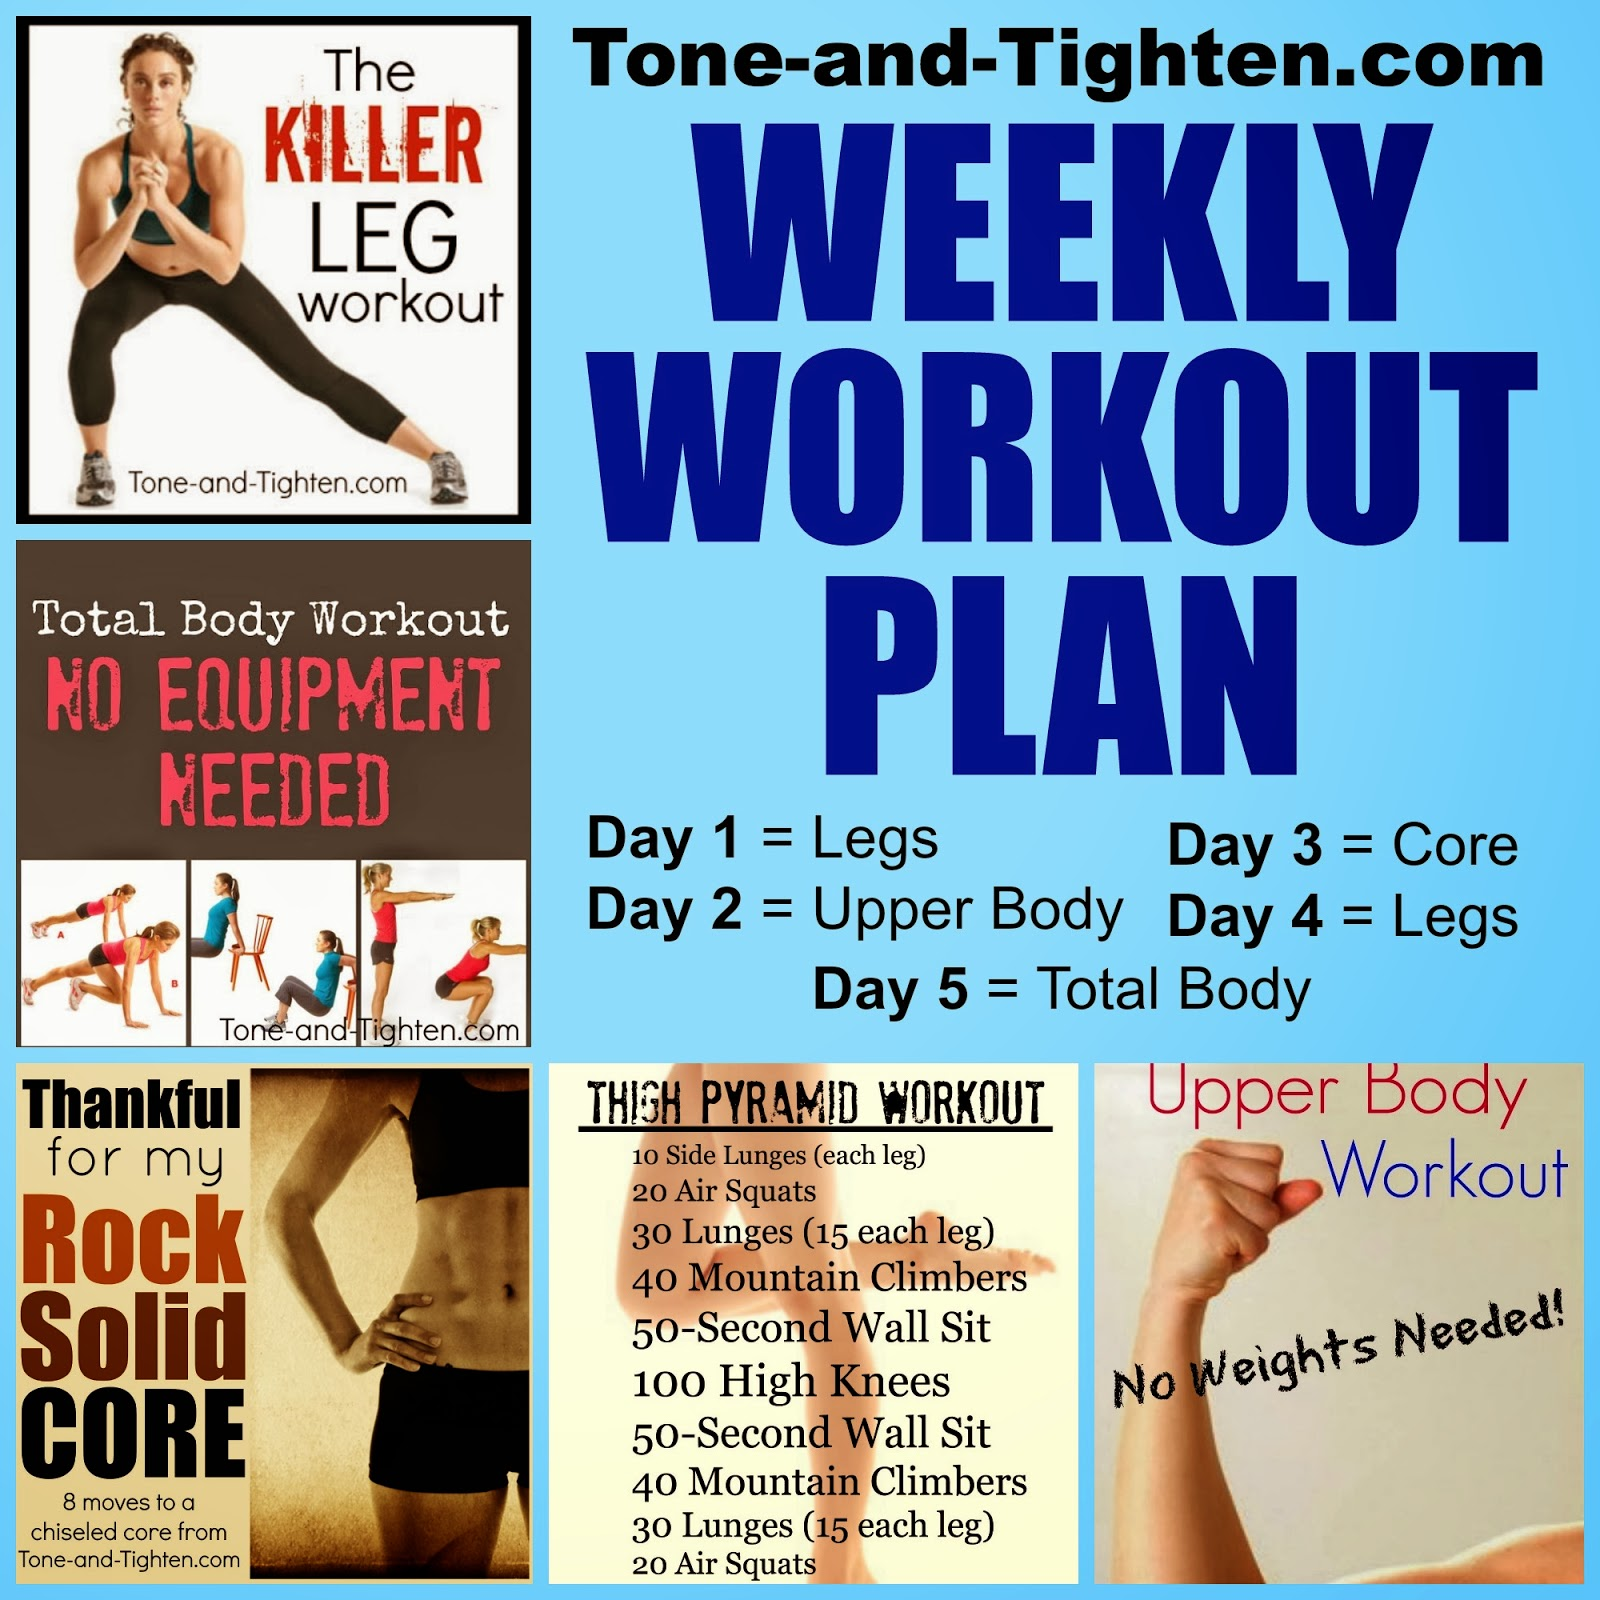 Exercise Workout Plan: Weekly Workout Plan – Body Shred From Toe To Head!